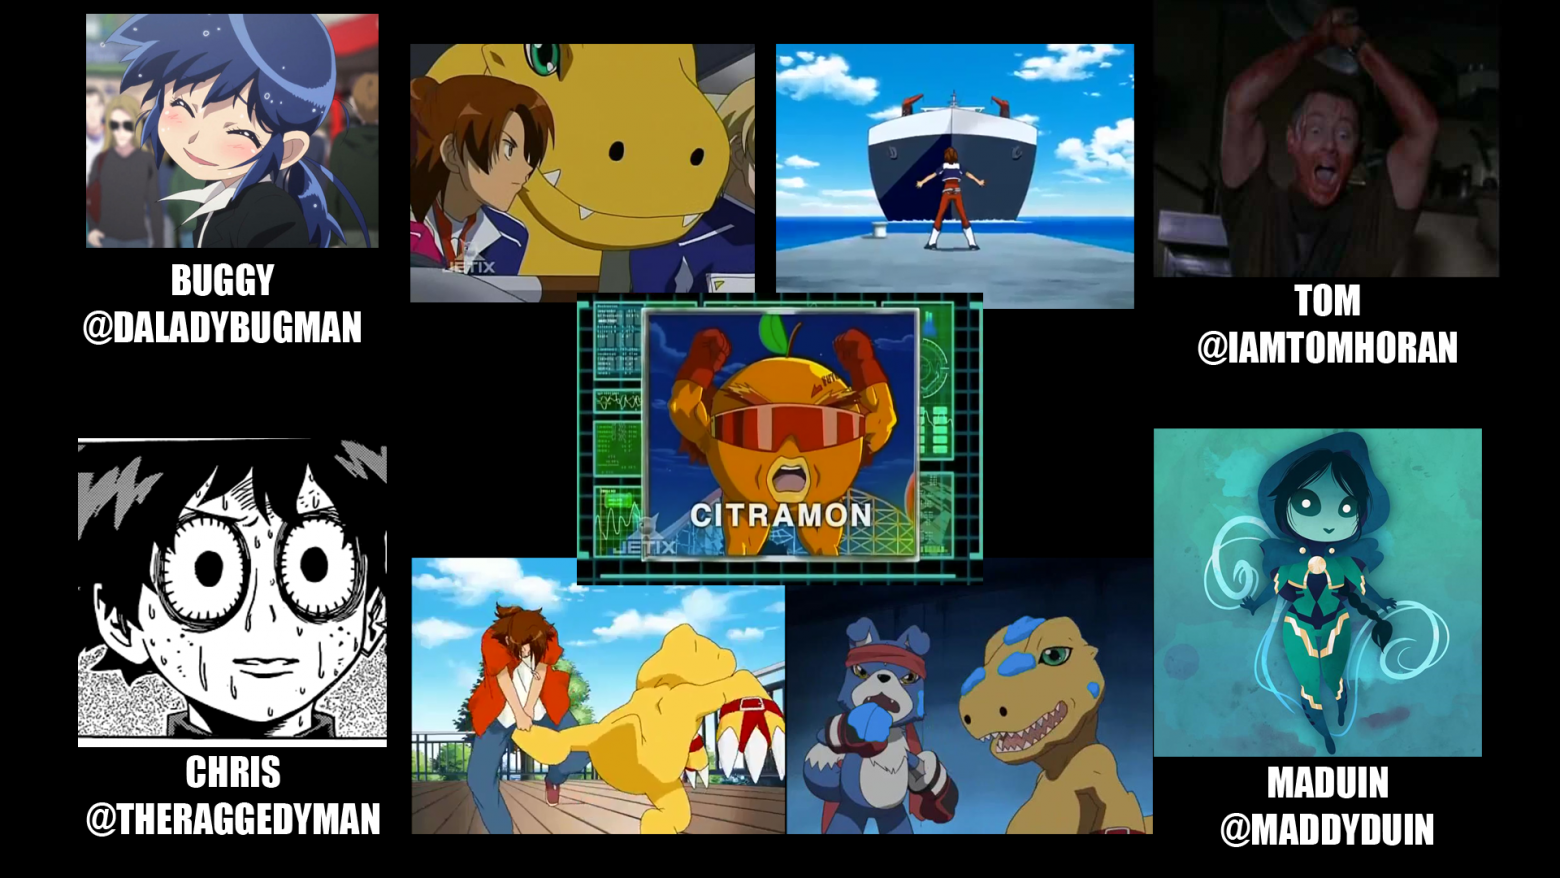 The Digicast 17: Jeff Fahey Did Not Die Or Voice Agumon